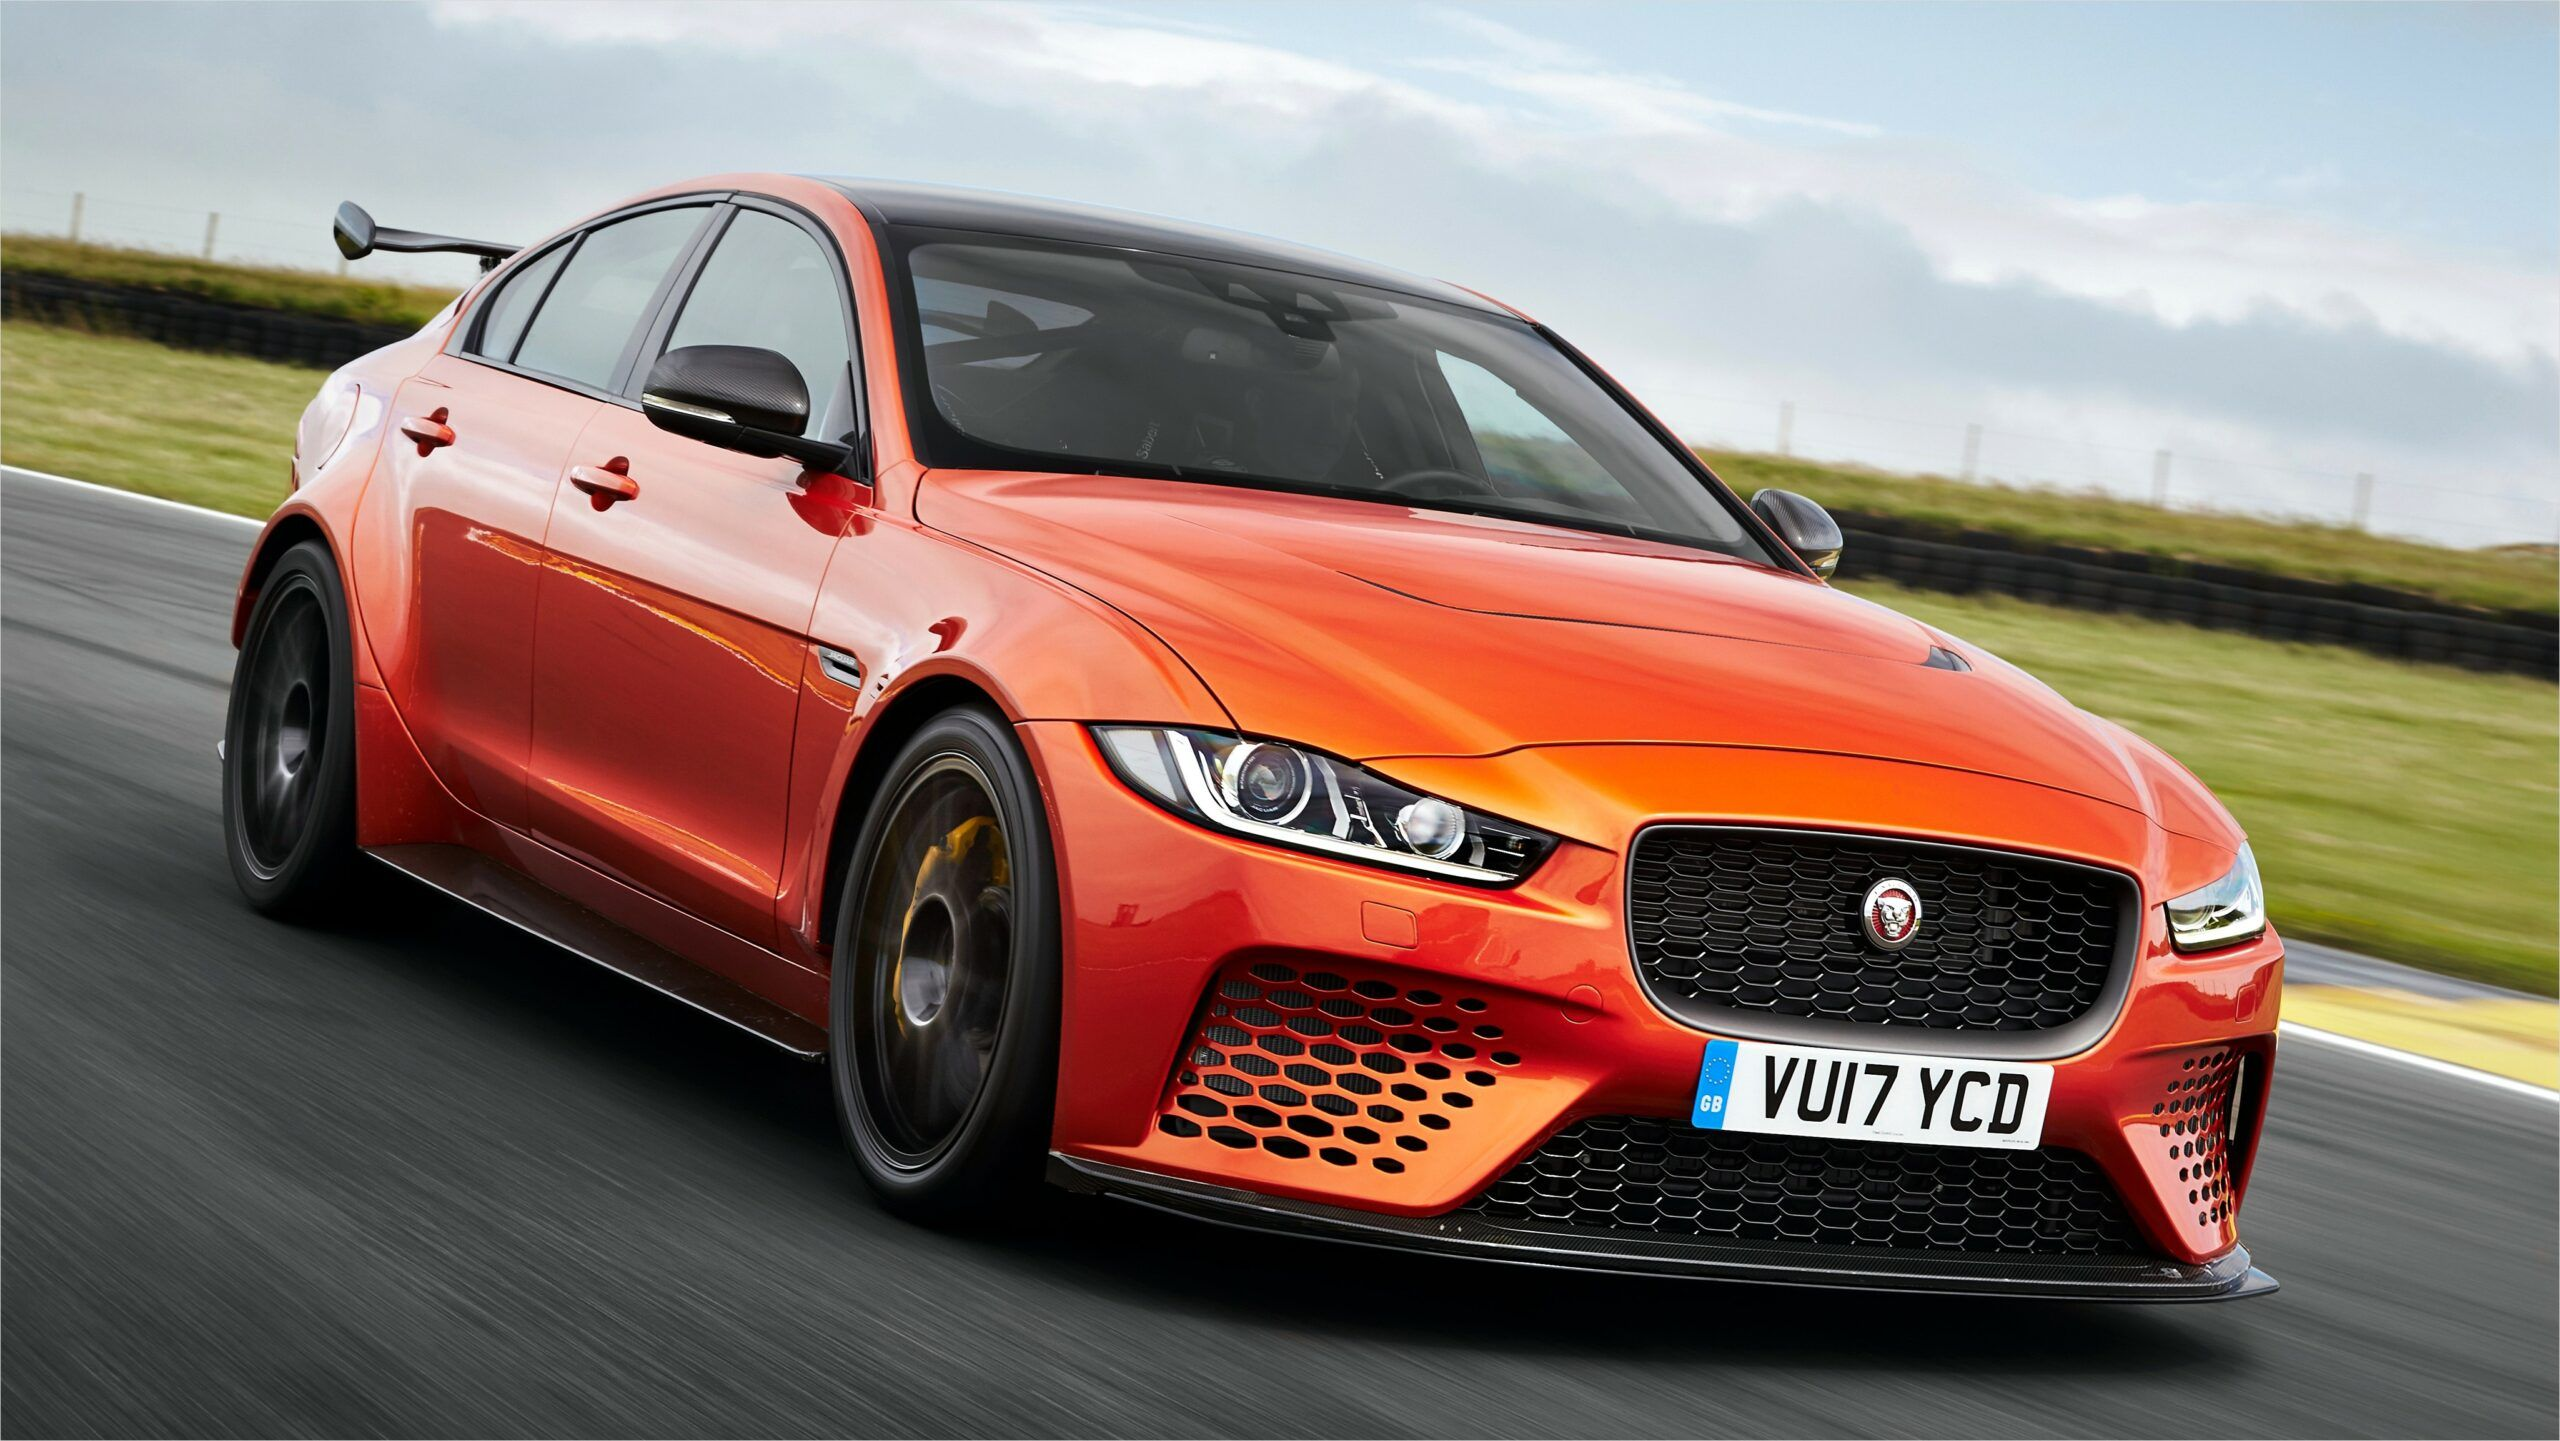 4k Wallpaper Jaguar Car In 2020 Jaguar Car Jaguar Xe Jaguar